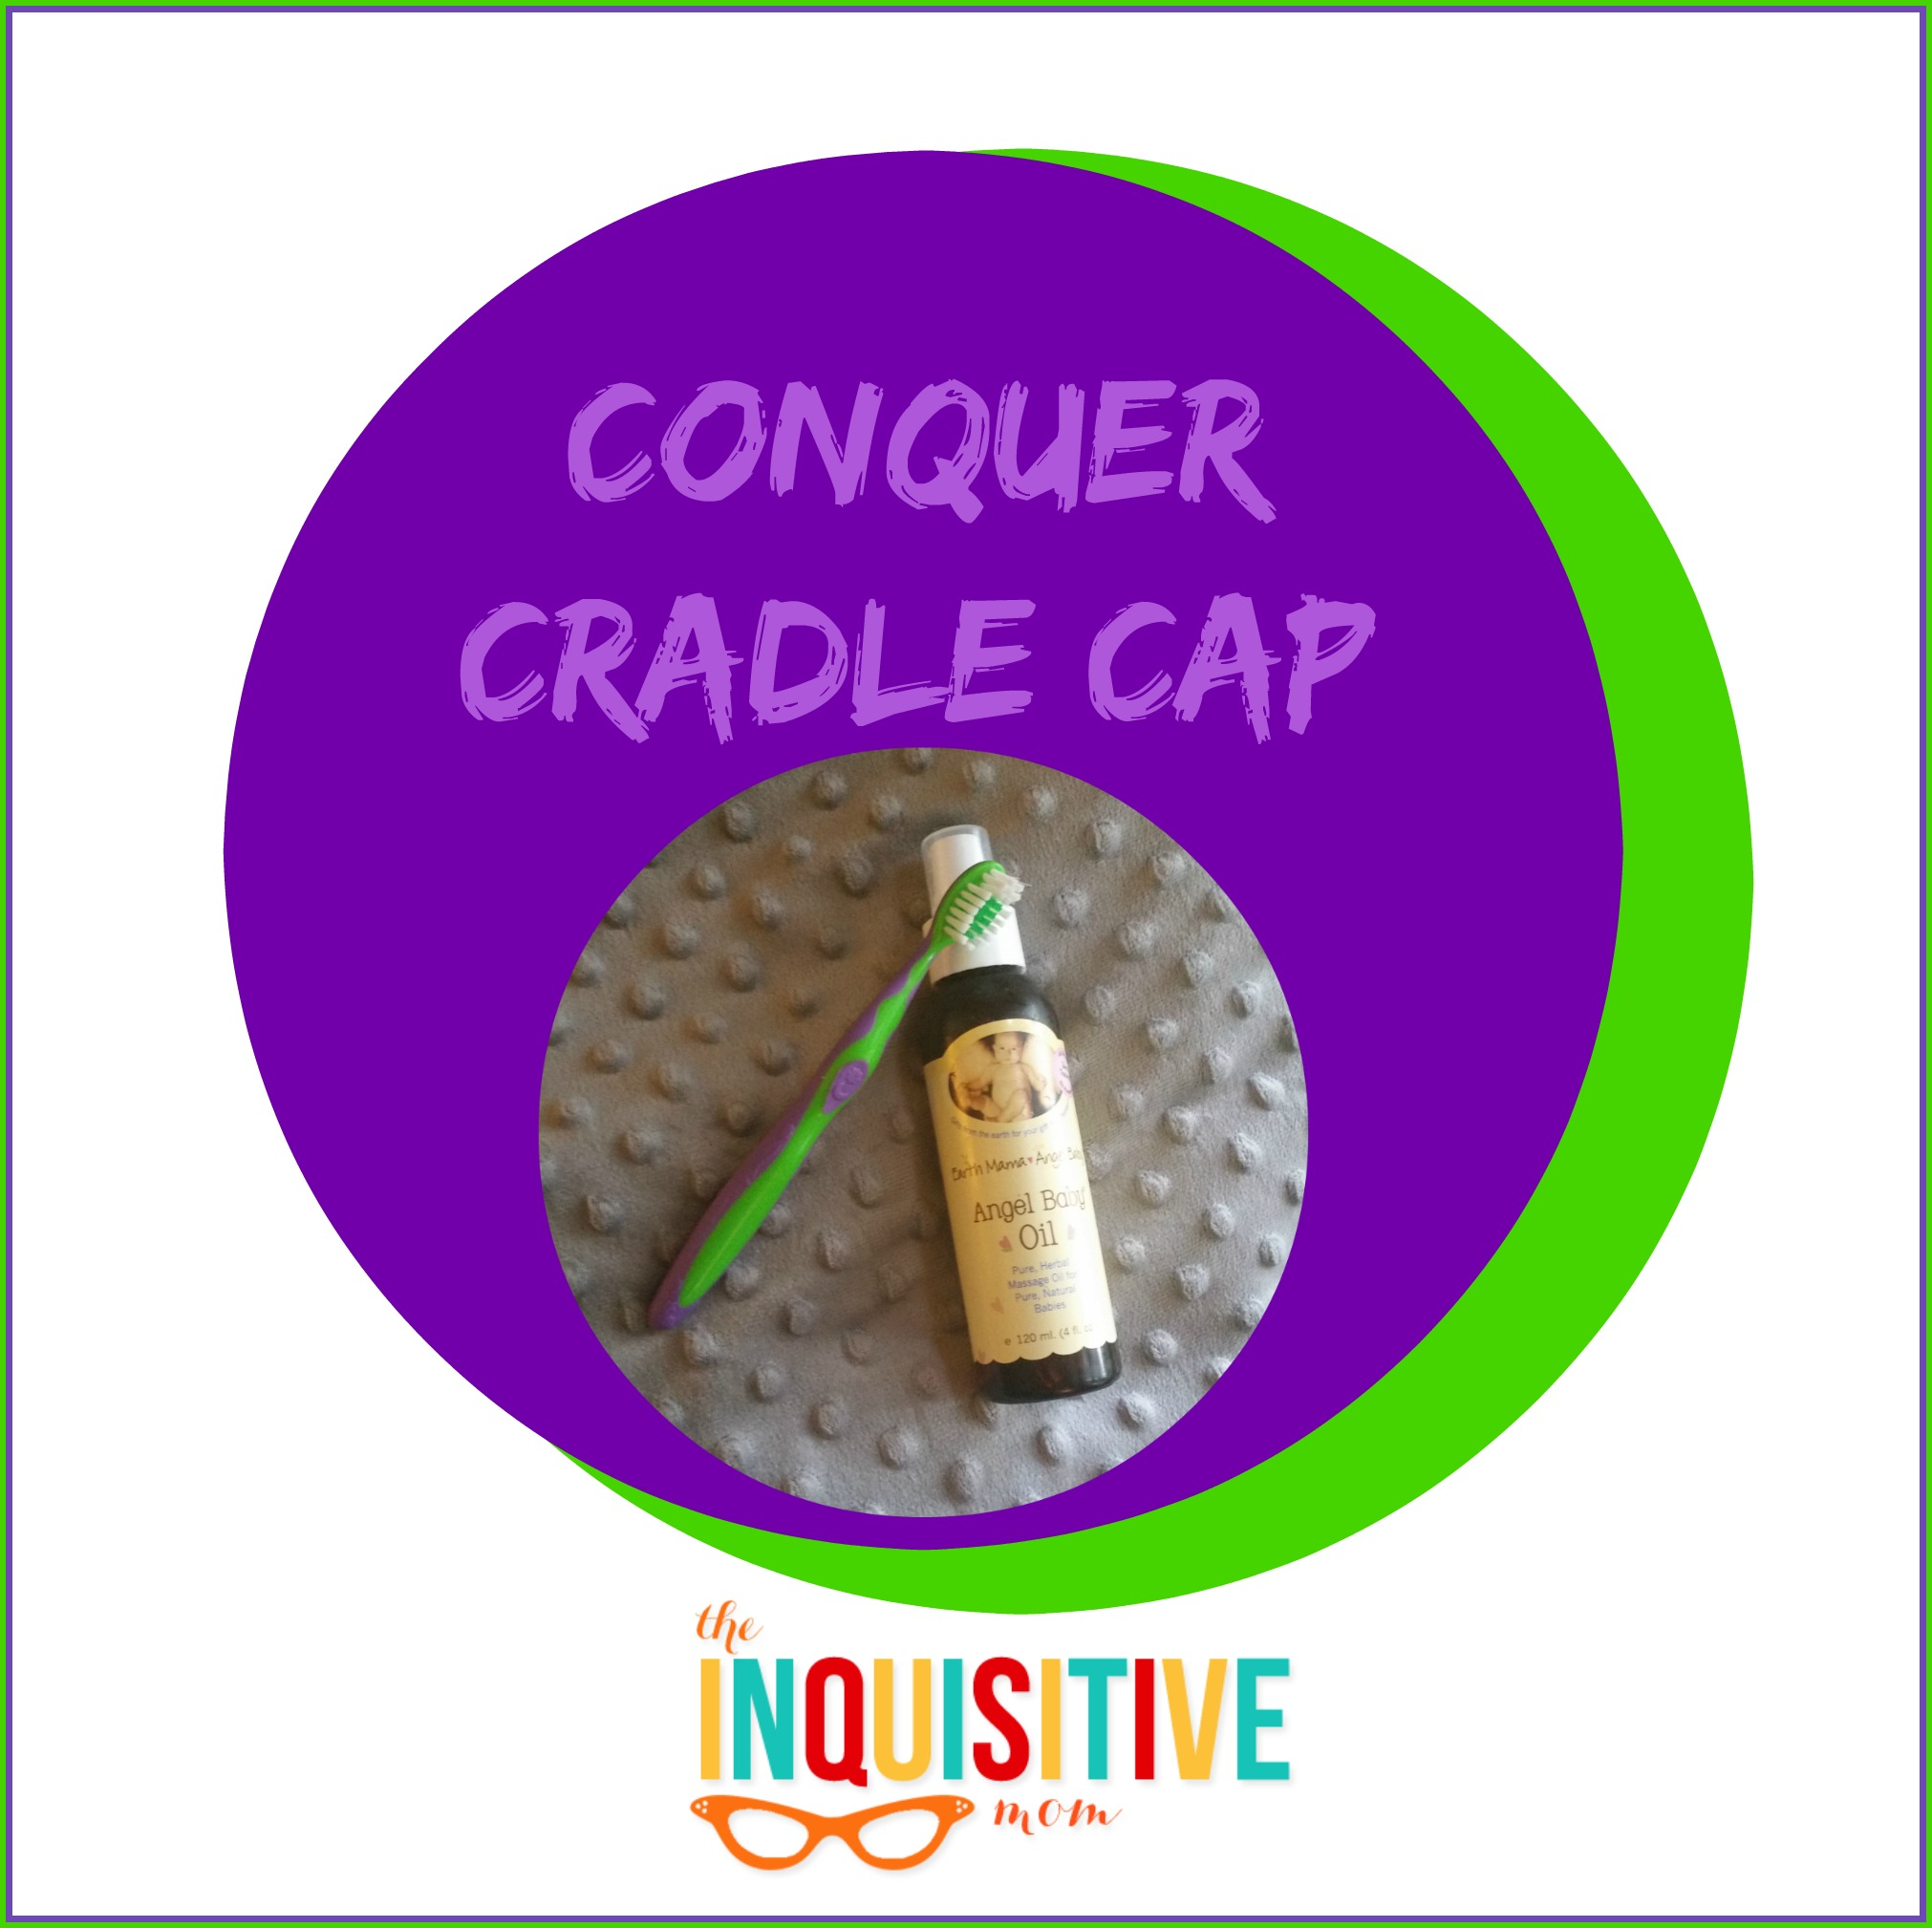 Baby Cradle Cloth Conquer Cradle Cap With This Quick Tip The Inquisitive Mom